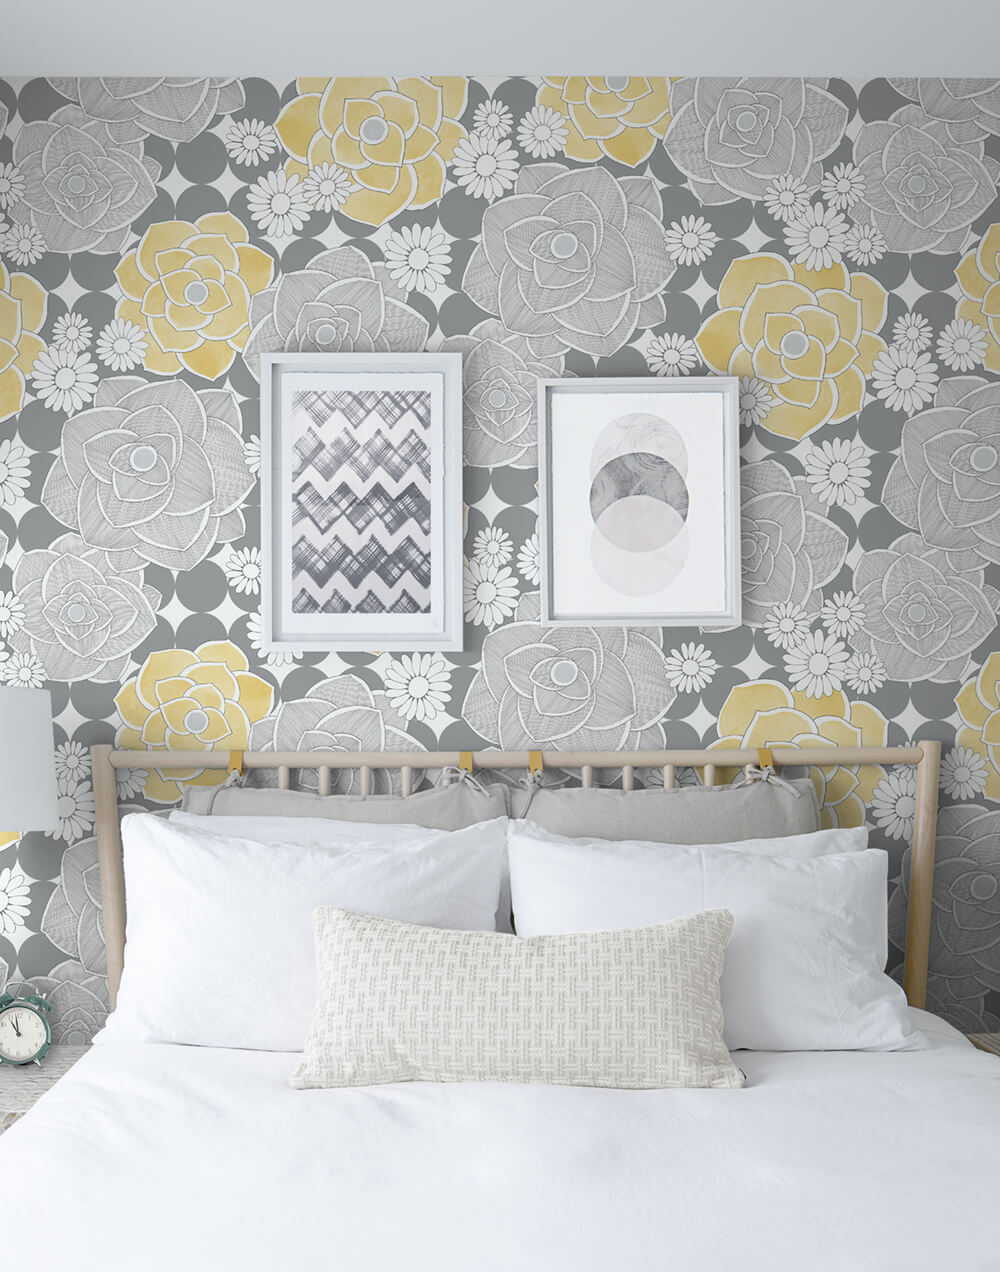 Retro Floral Peel And Stick Wallpaper In Yellow And Grey By Nextwall Burke Decor